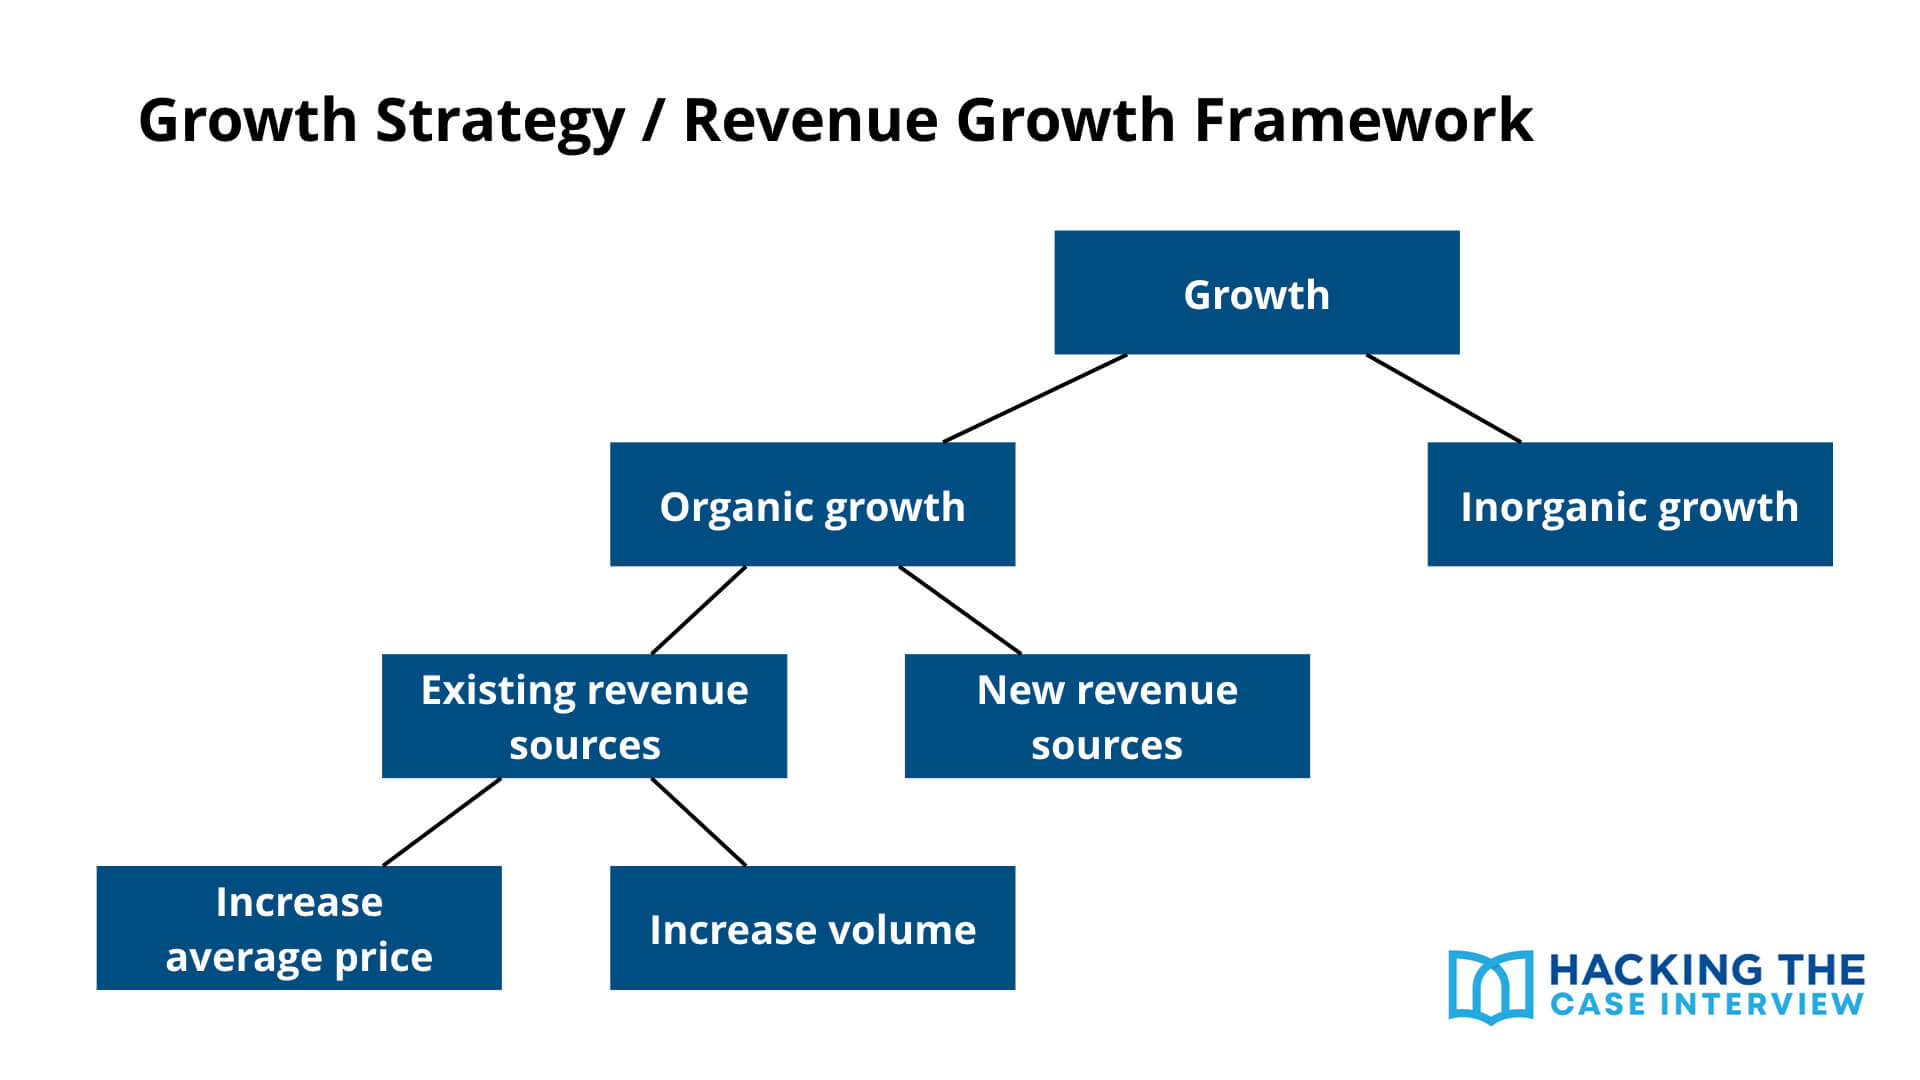 Growth Strategy and Revenue Growth Case Interview Framework